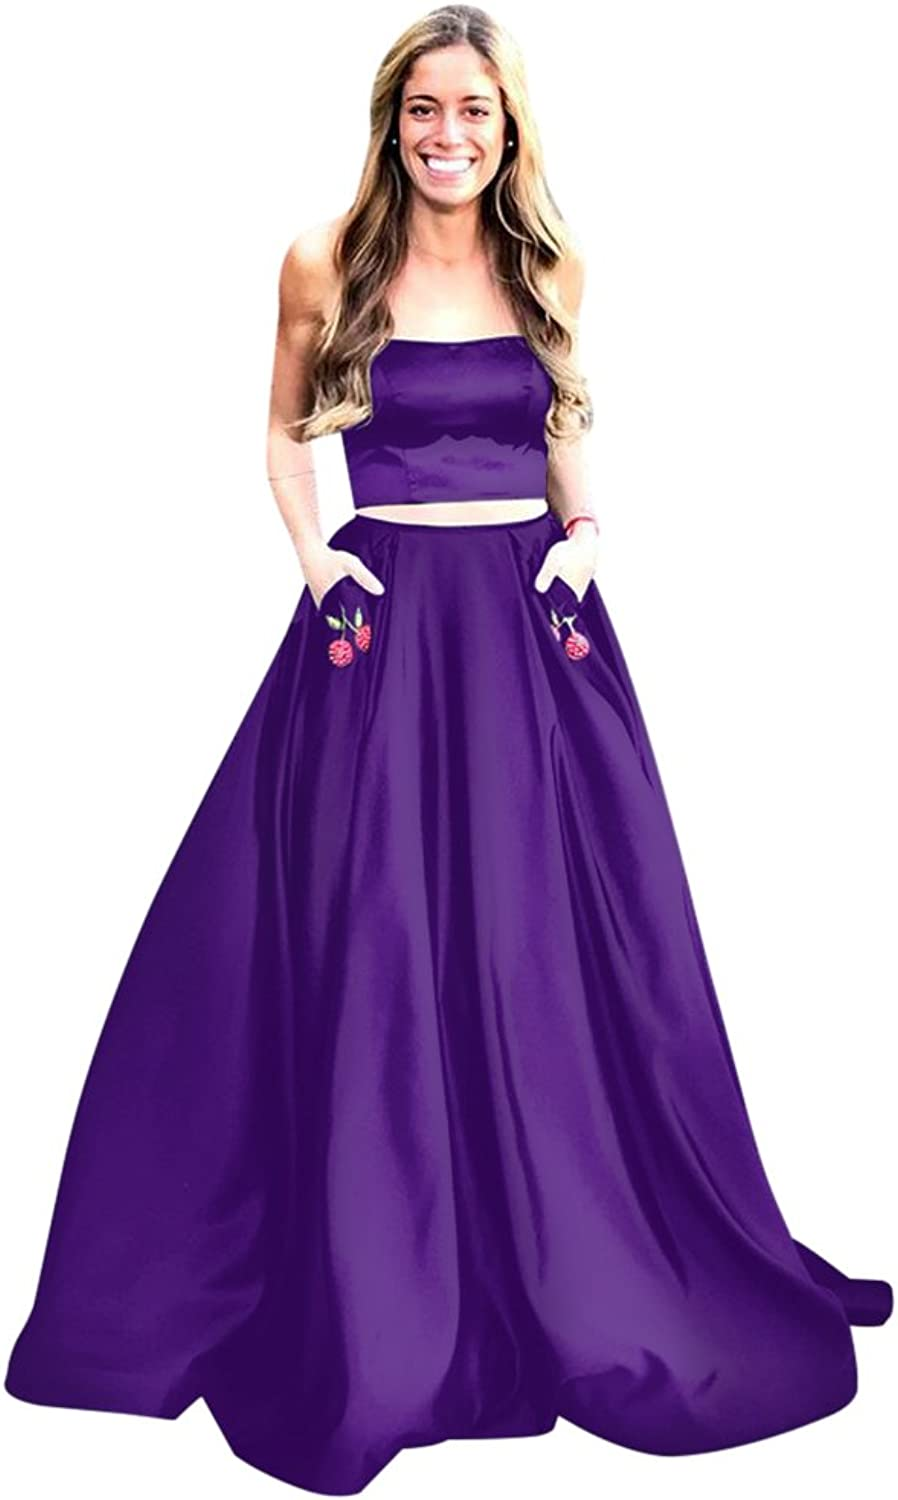 Harsuccting Two Piece Strapless Long Satin Prom Dress with Flower Pockets